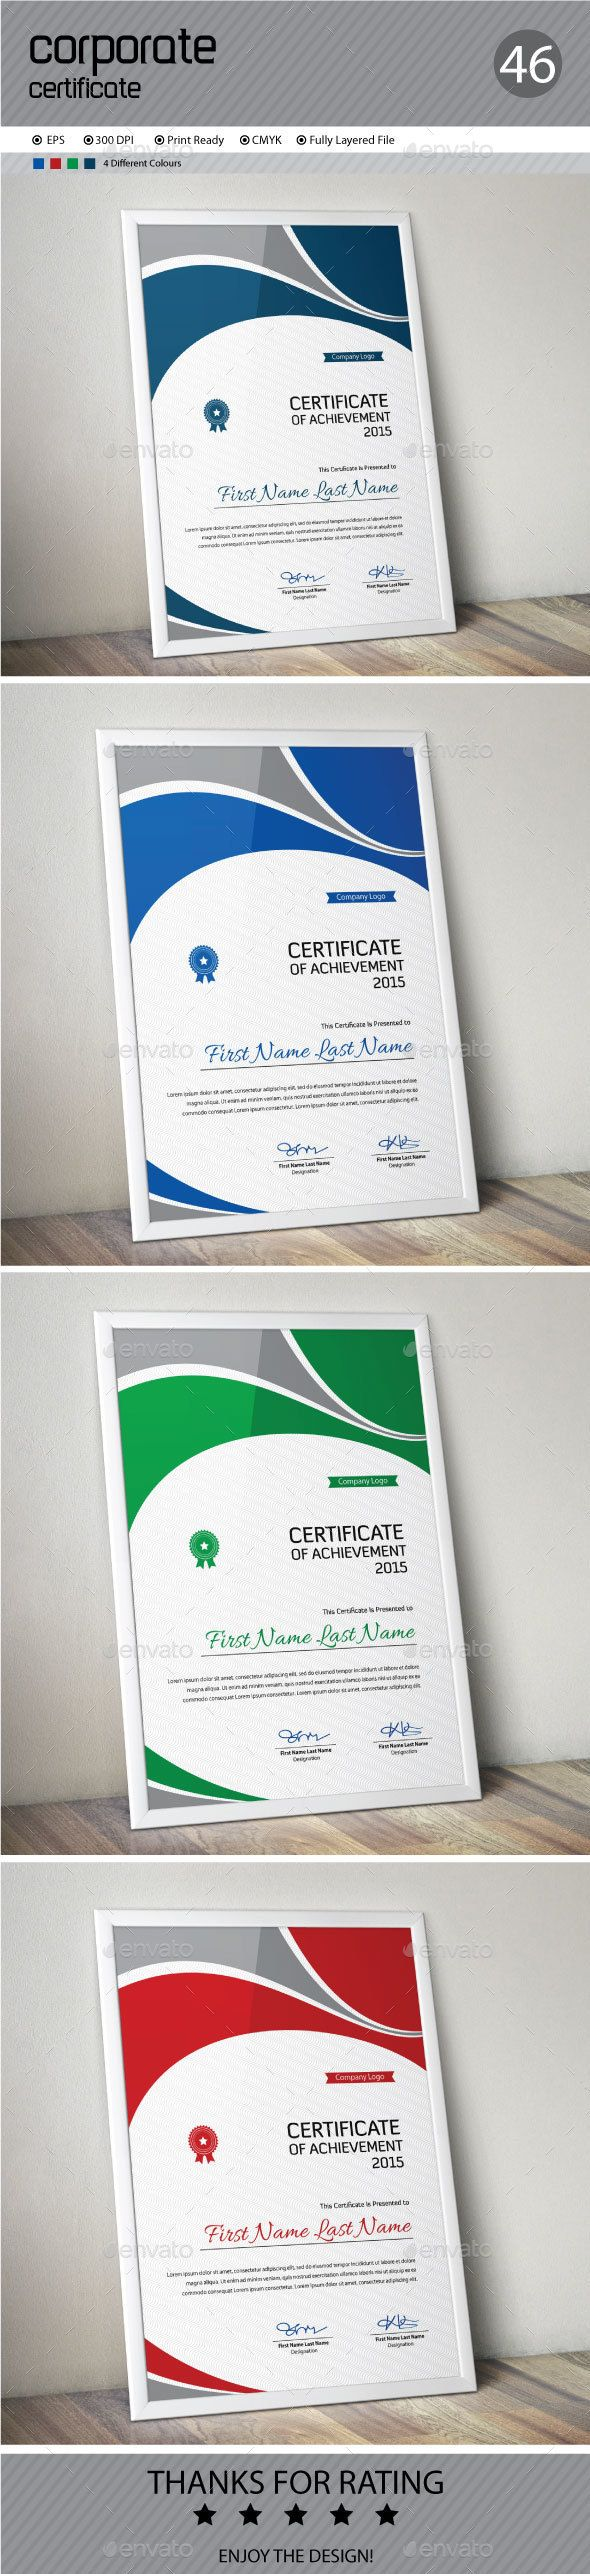 29 best certificate templates images on pinterest certificate certificate template vector eps download here httpgraphicriver yadclub Gallery